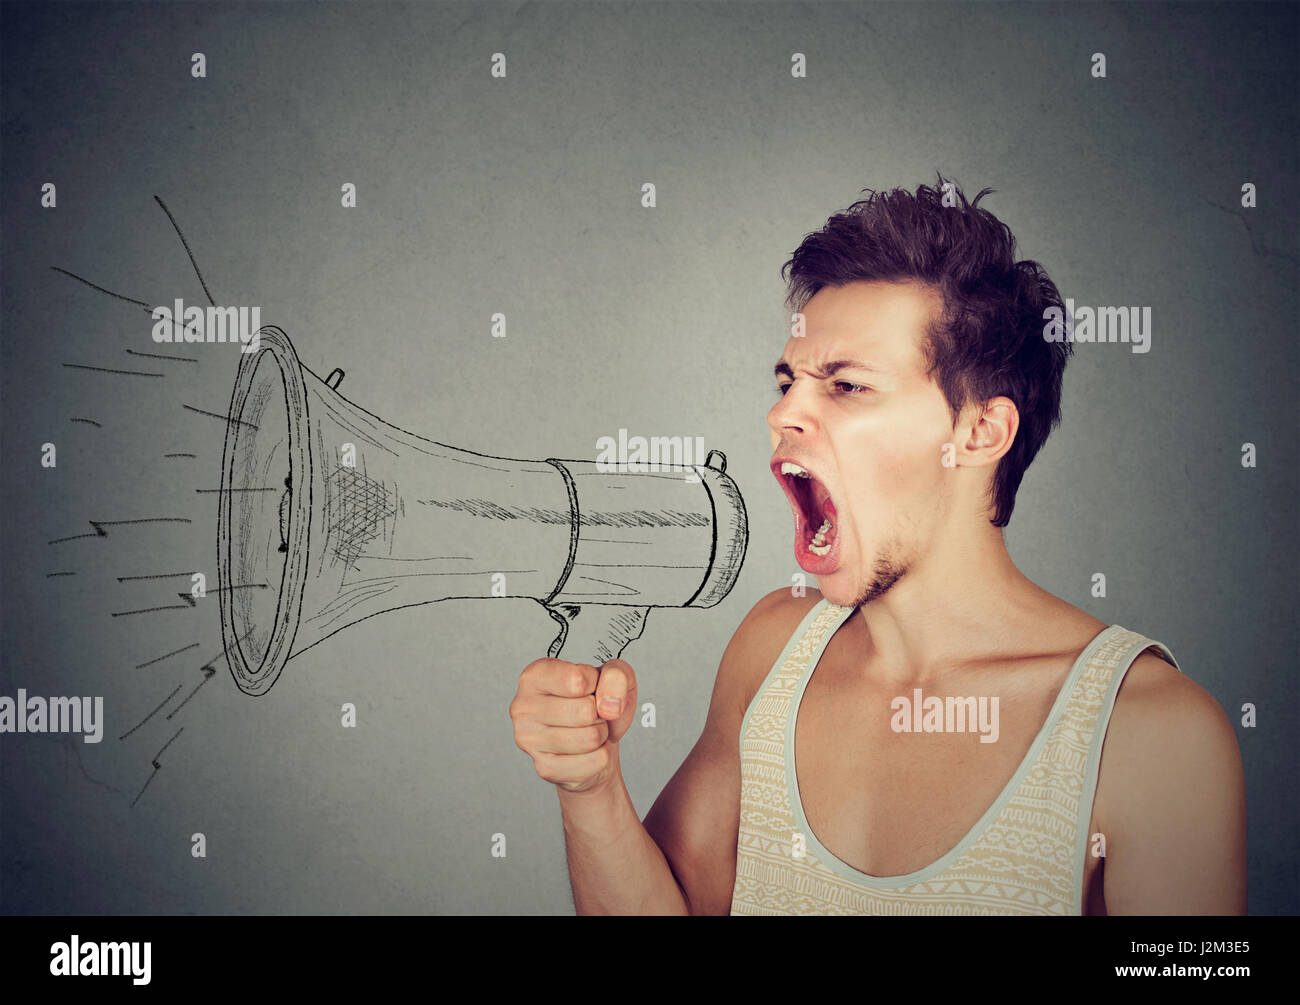 Grimace face clip art stock photo woman pulls a face in upset - Screaming Man Stock Image